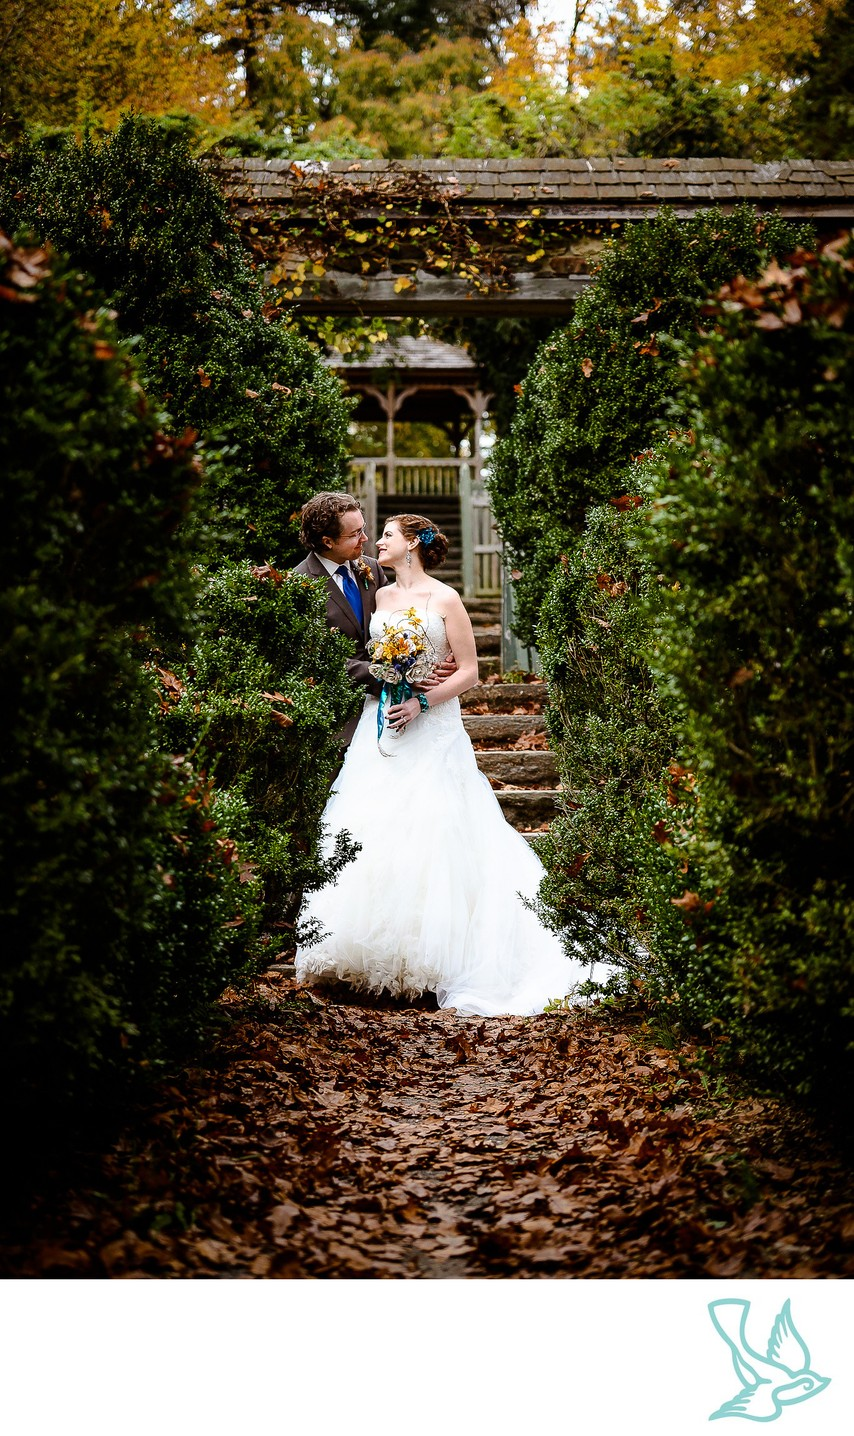 Parque Ridley Creek Bride & Groom Portrait